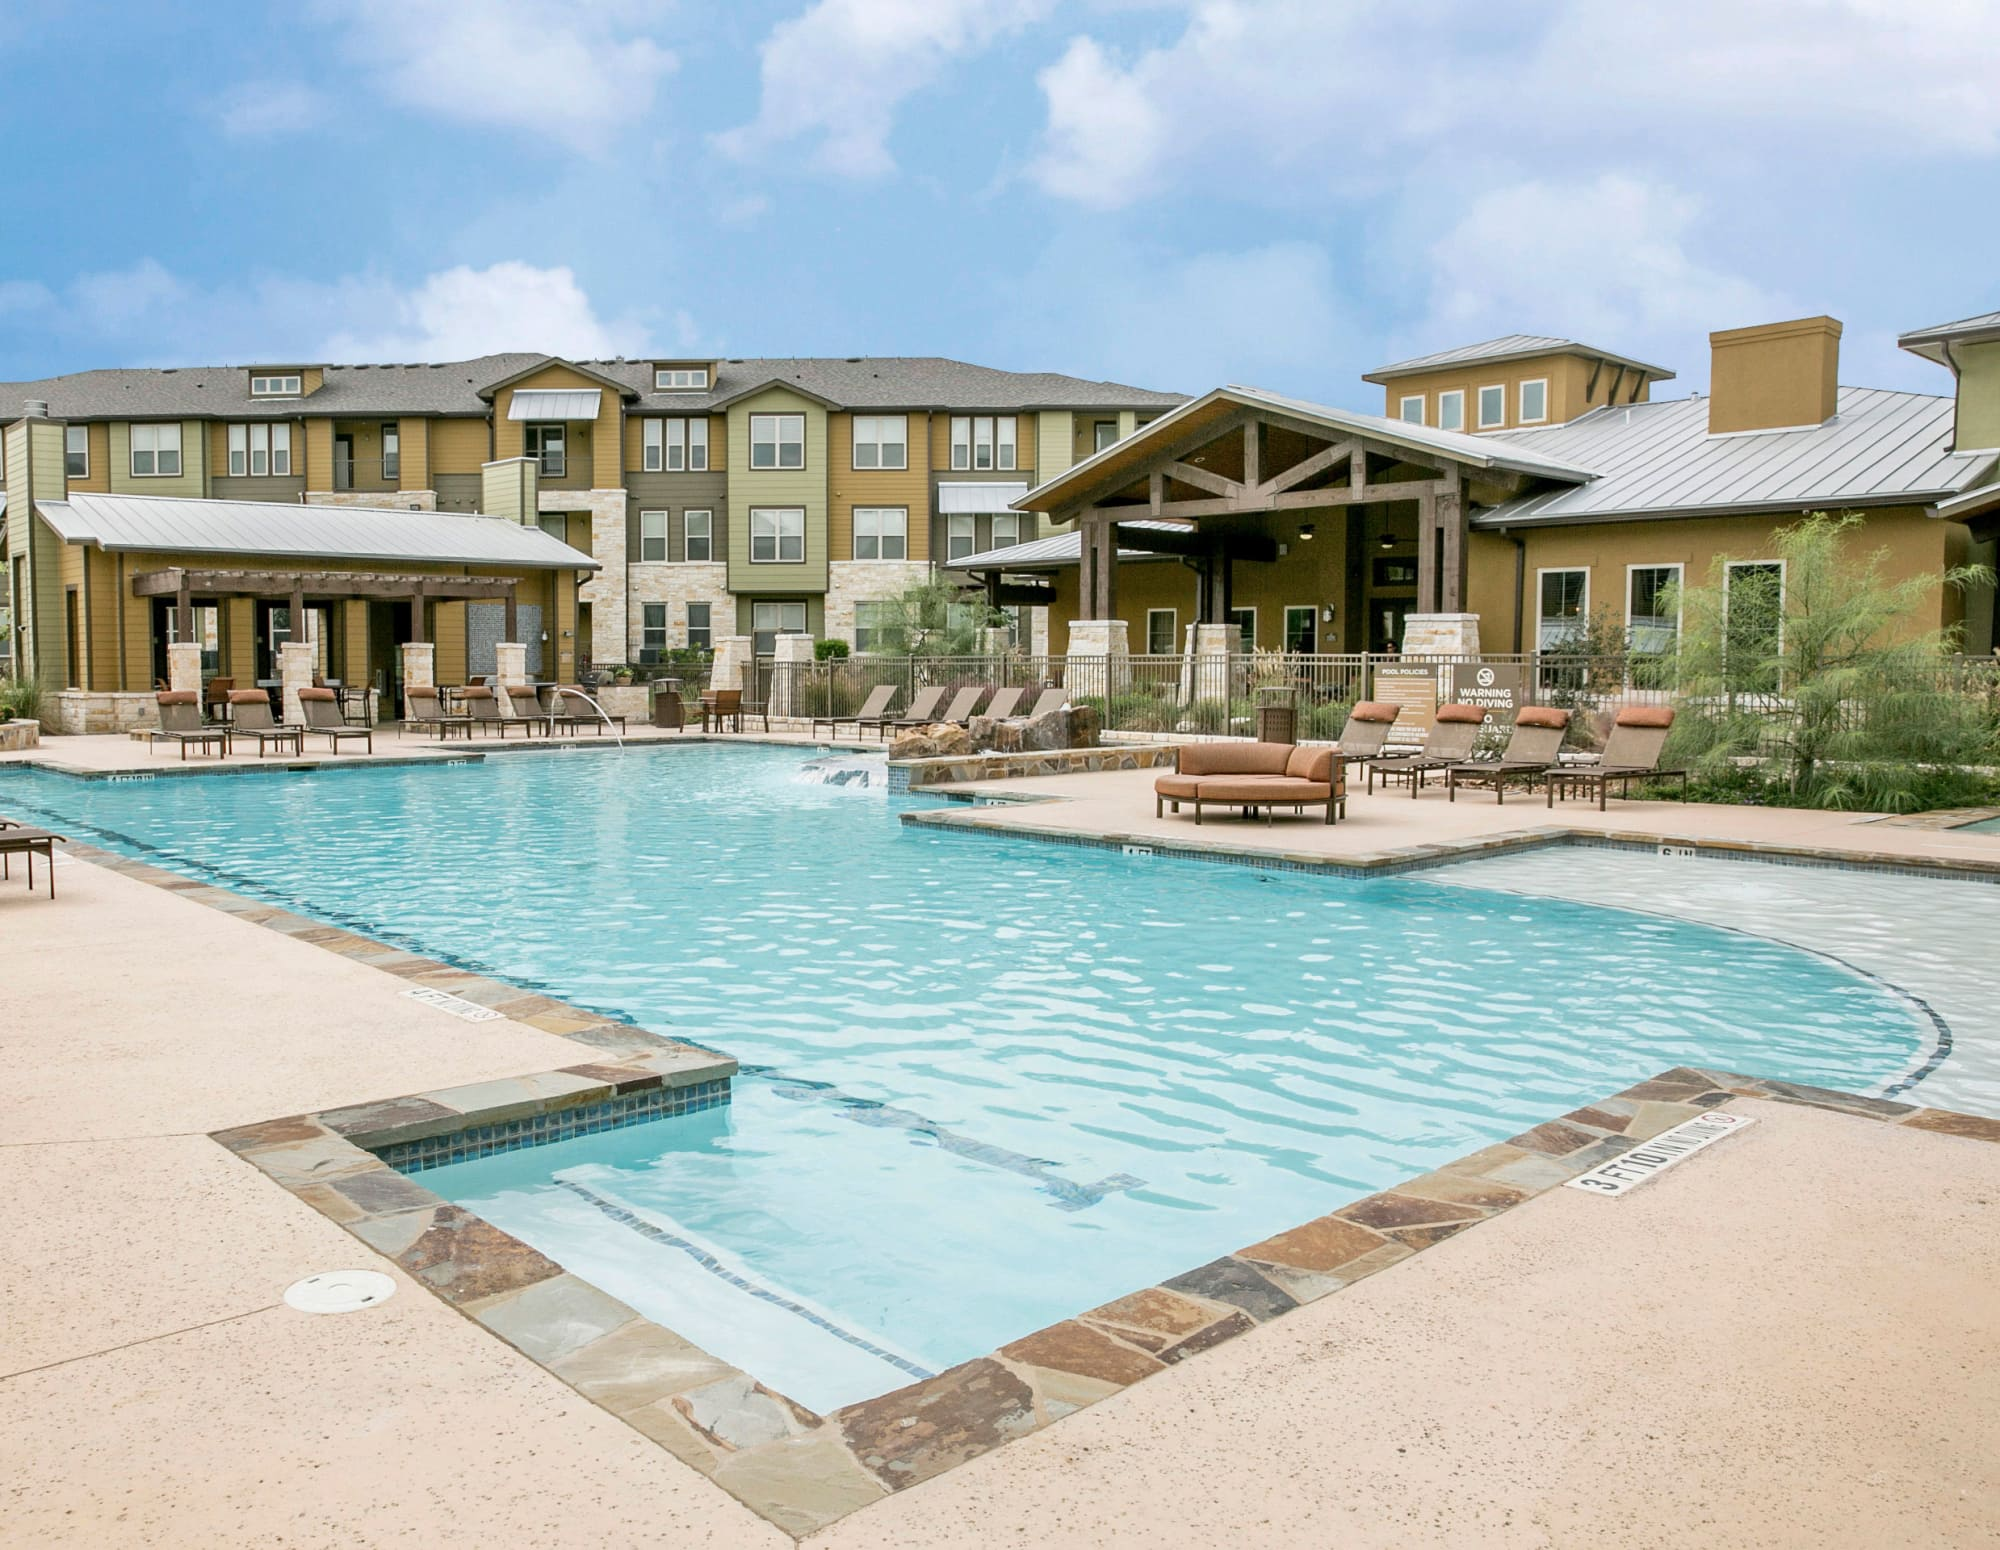 Apartments at Pecos Flats in San Antonio, Texas